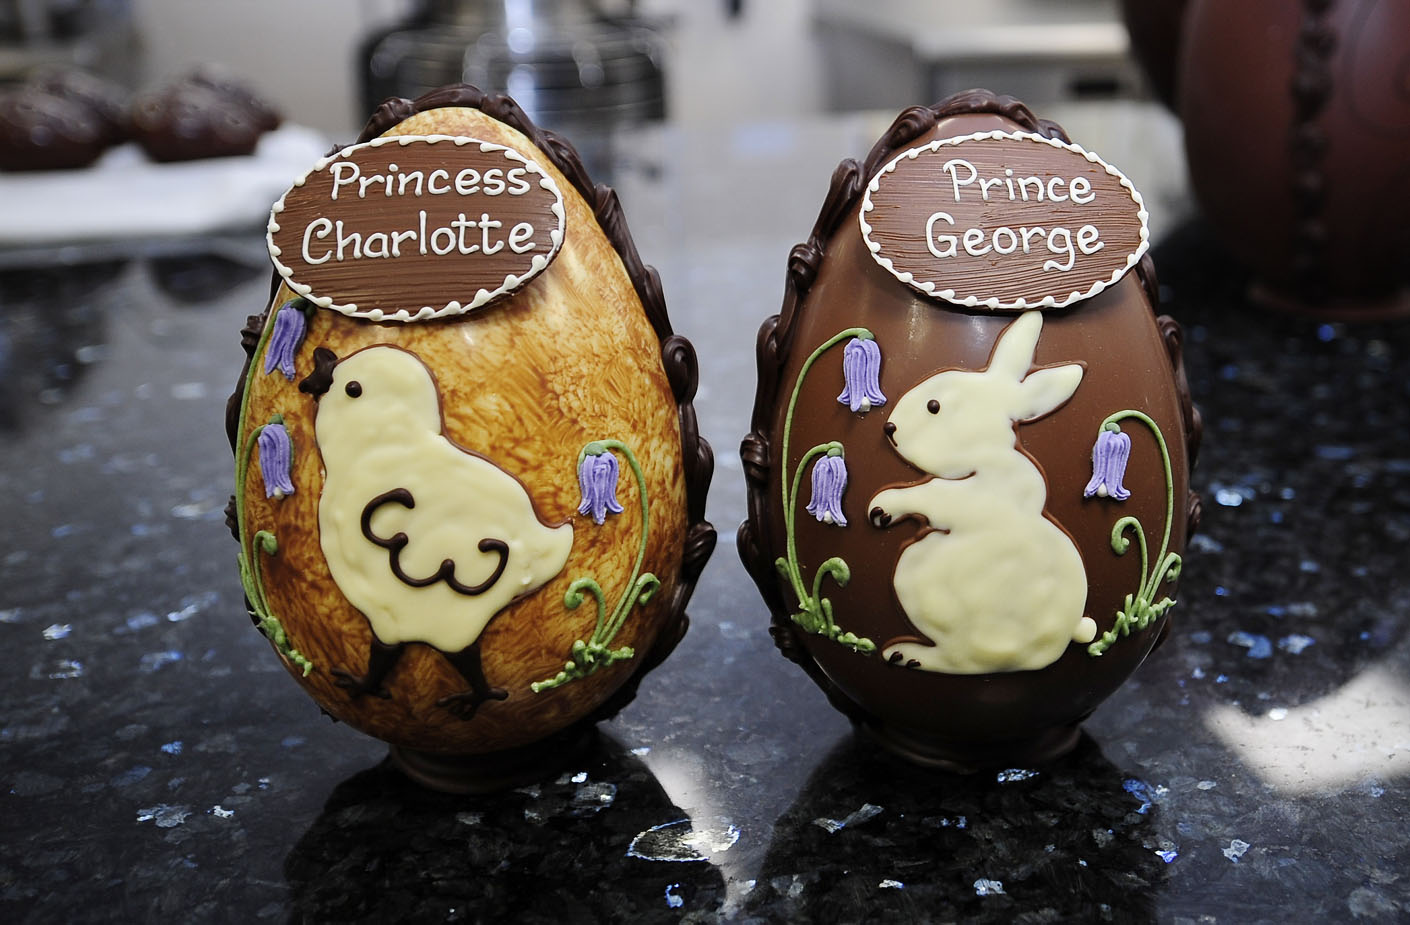 Easter eggs given to Prince George and Princess Charlotte